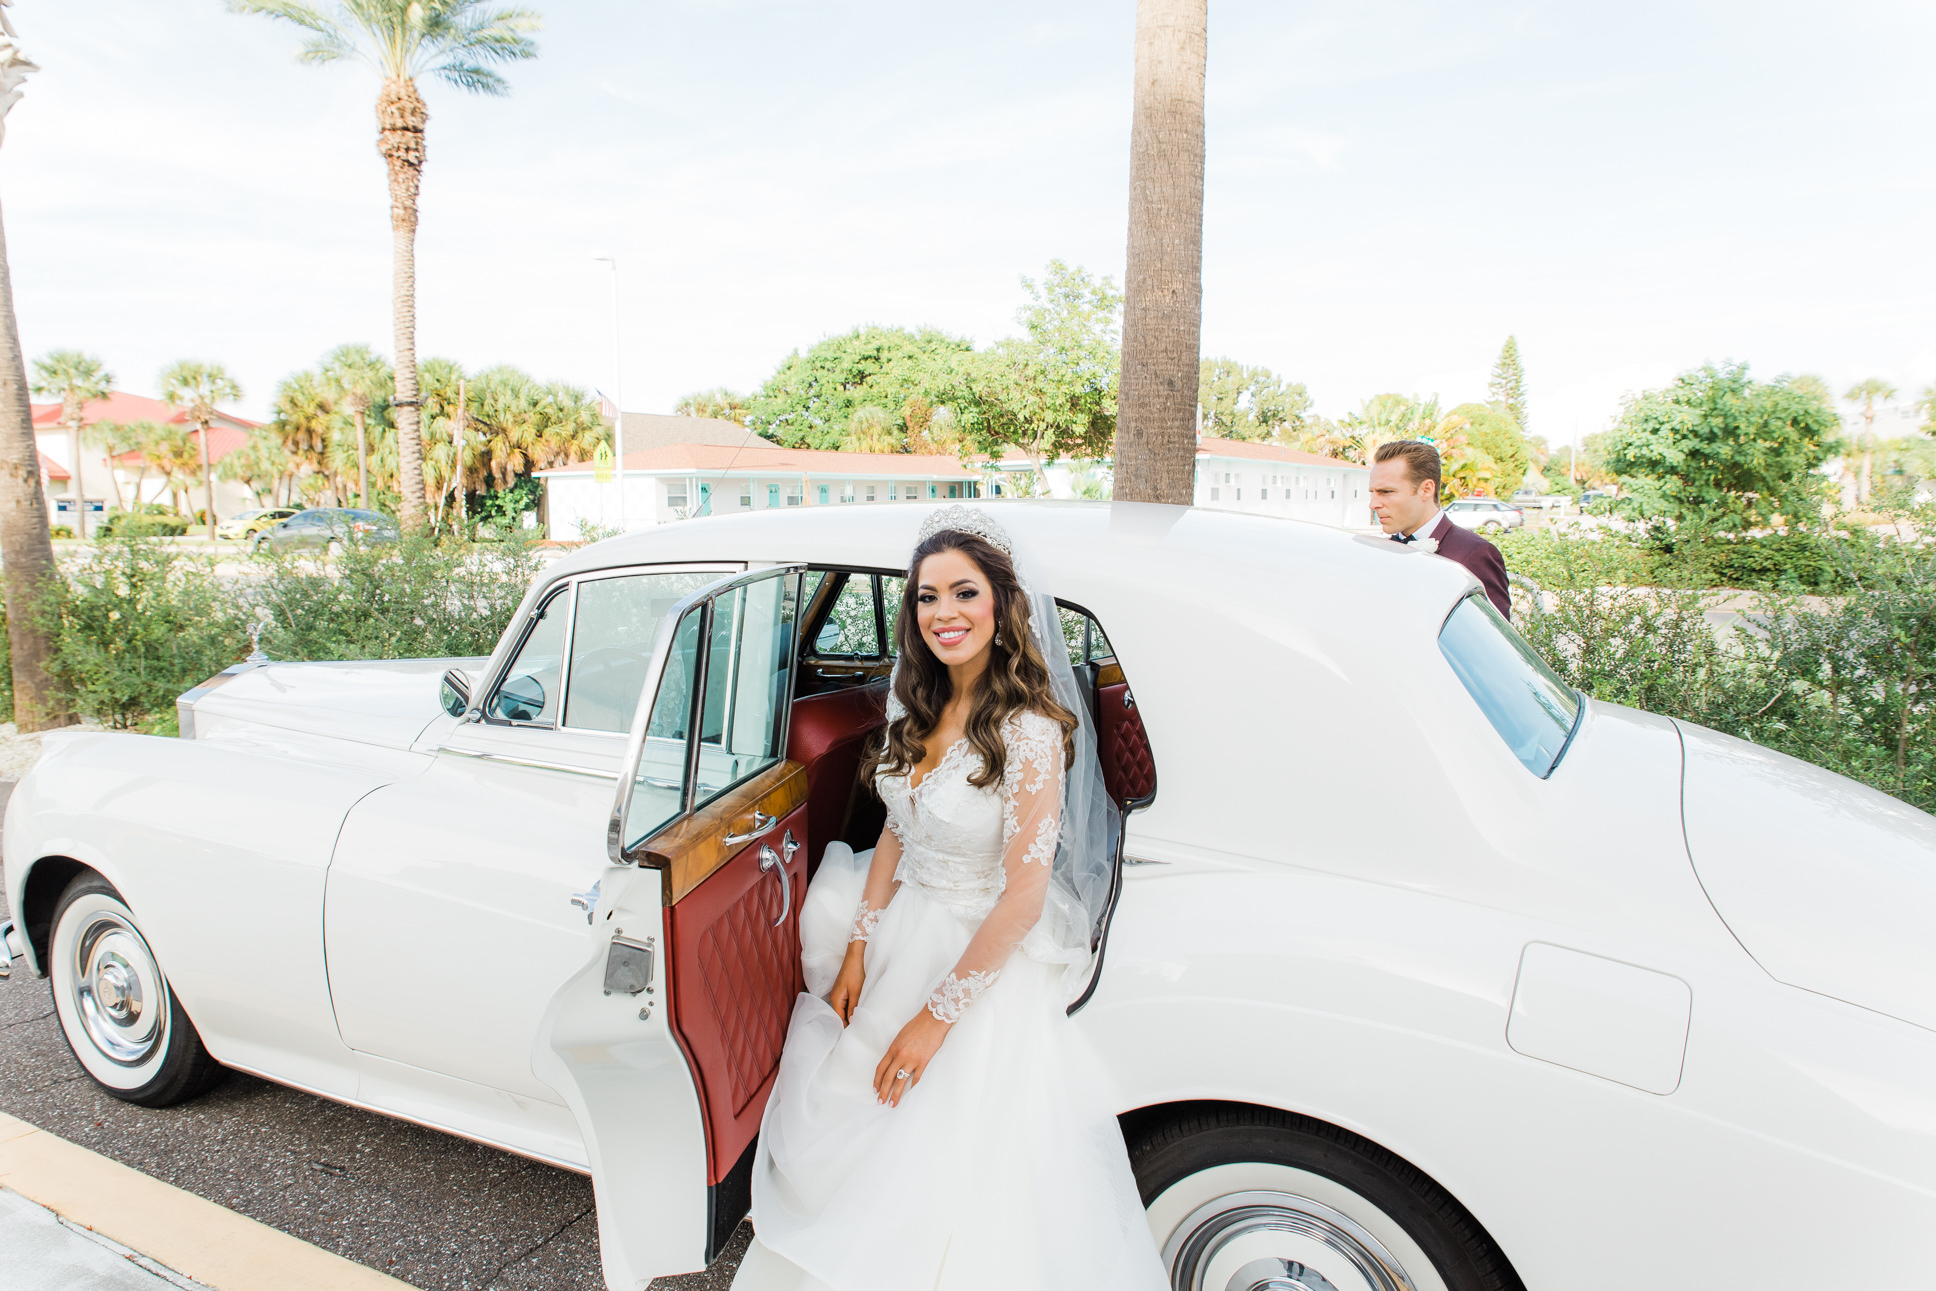 Elegant Bride Wearing Hayley Paige Wedding Dress with Lace Long Sleeve Cover with Vintage White Car